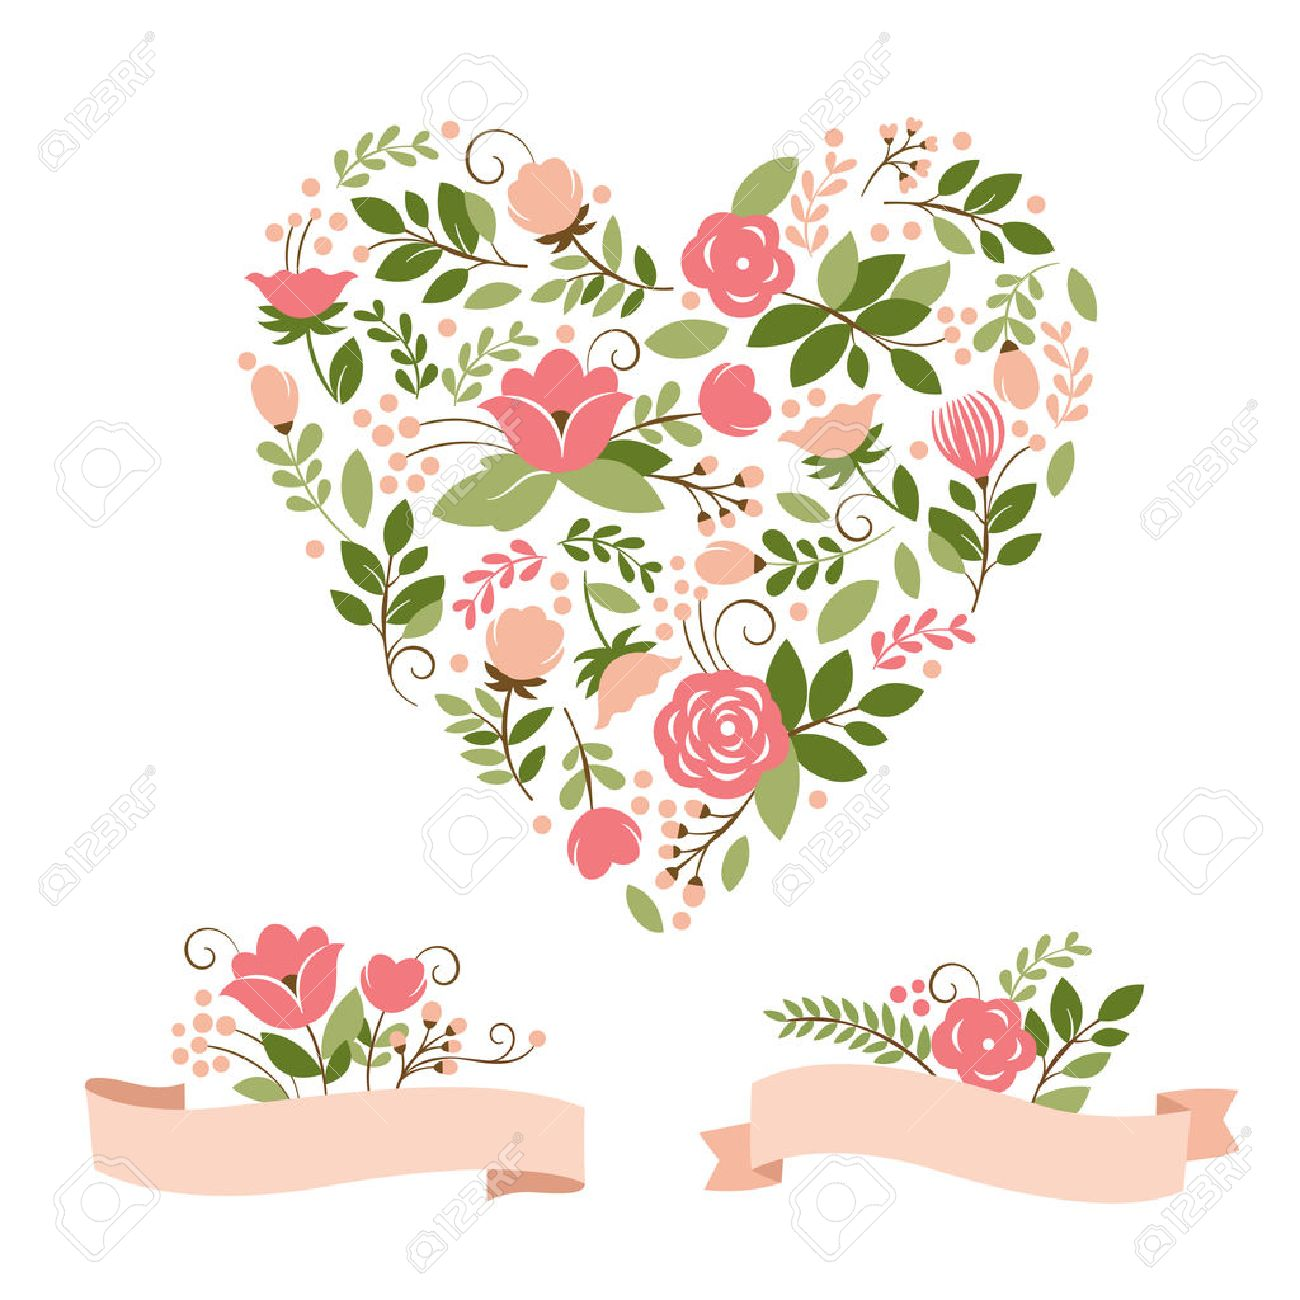 Heart stock illustration royalty free illustrations stock clip art - Floral Bouquets And Heart Stock Vector 22504590